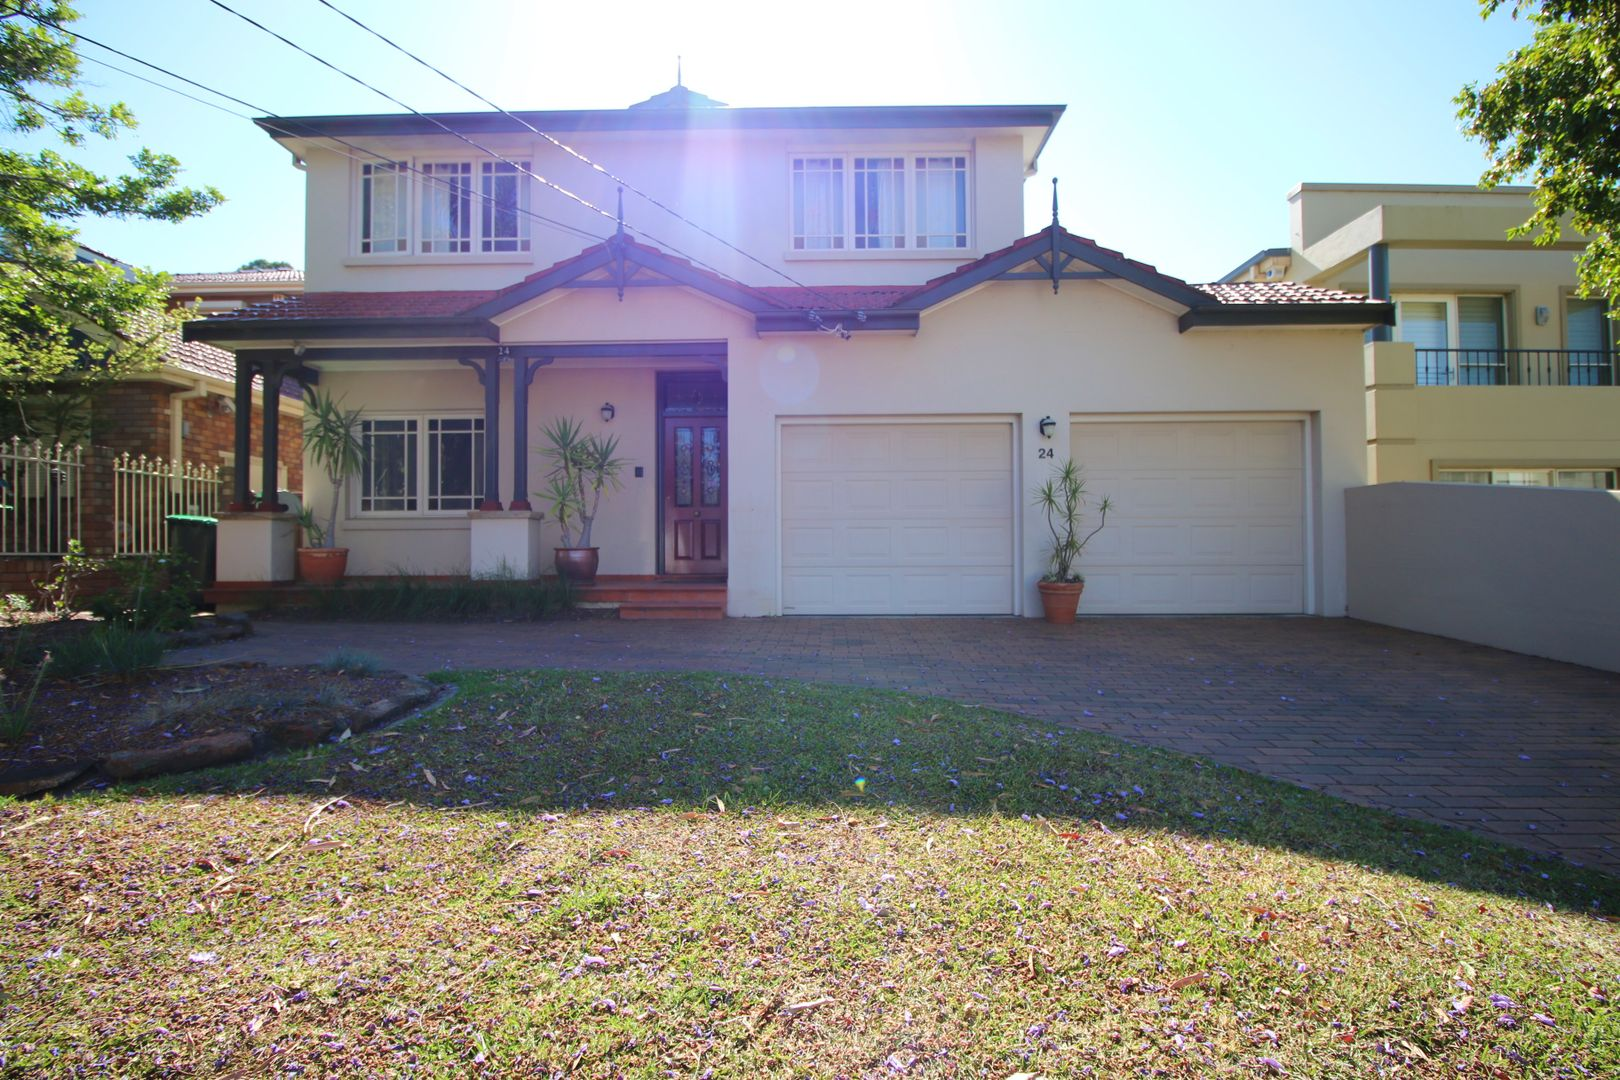 24 Wentworth Avenue, Blakehurst NSW 2221, Image 0